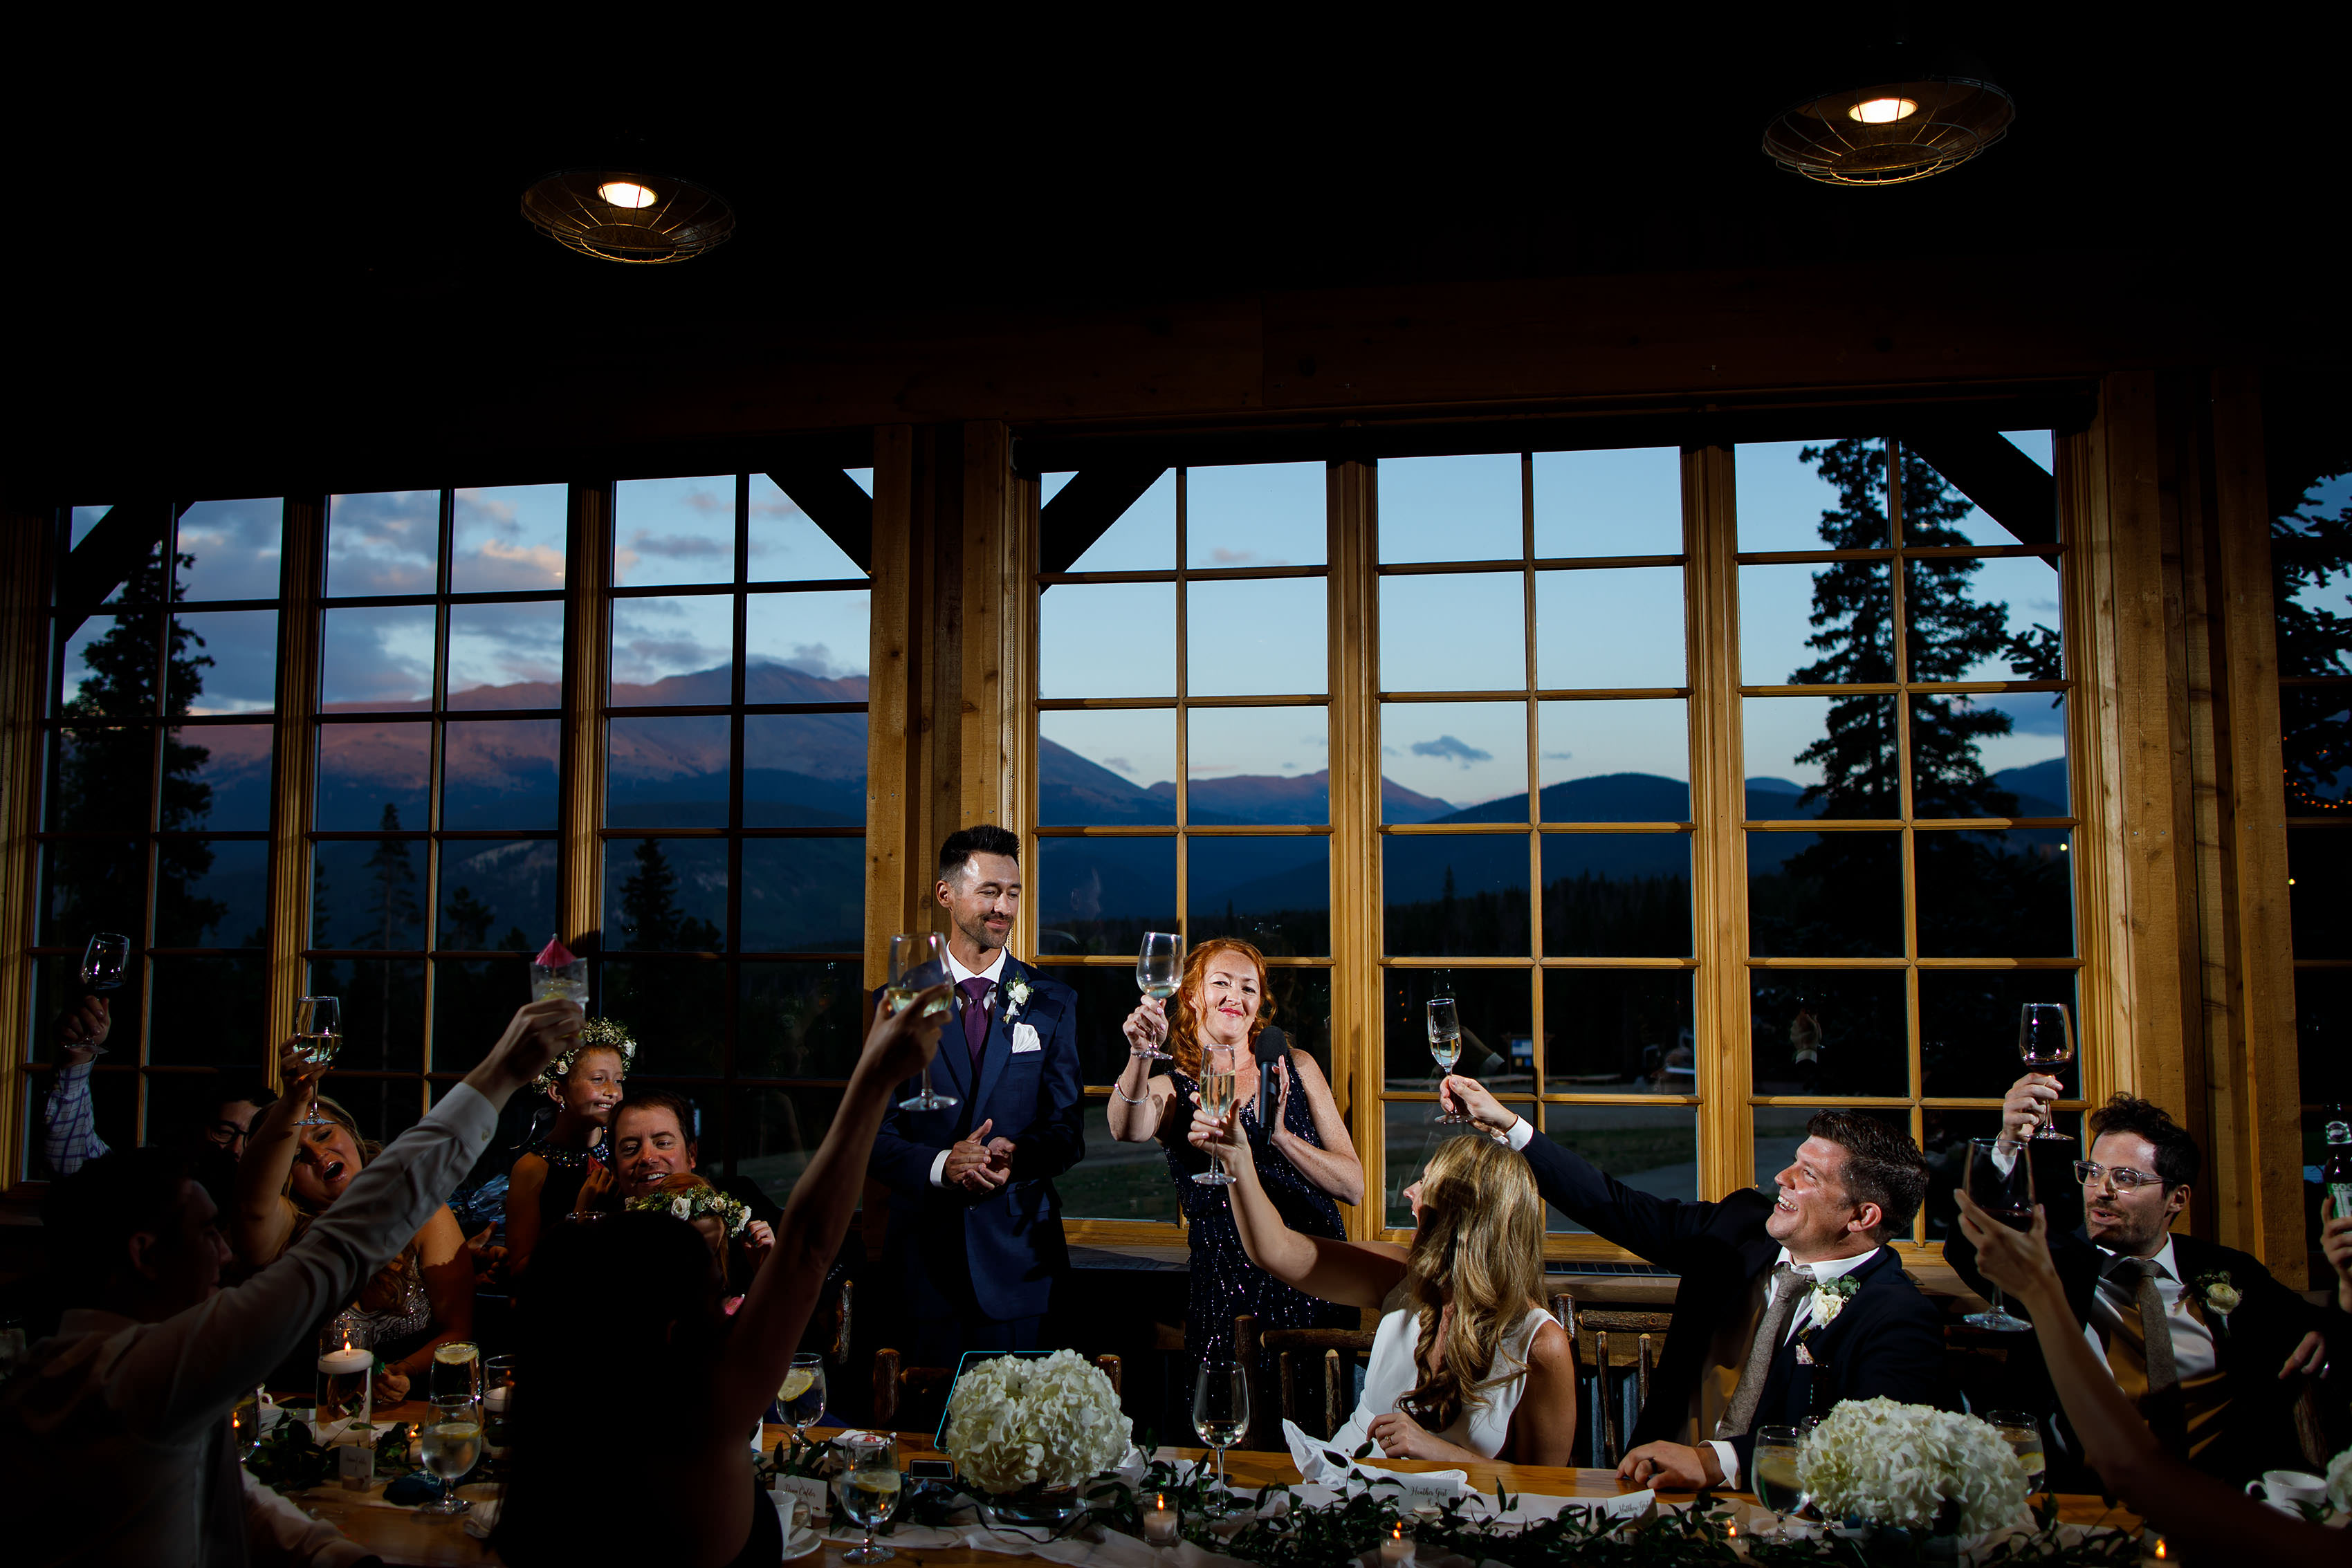 The maid of honor gives a toast during the wedding at TenMile Staion in Breckenridge